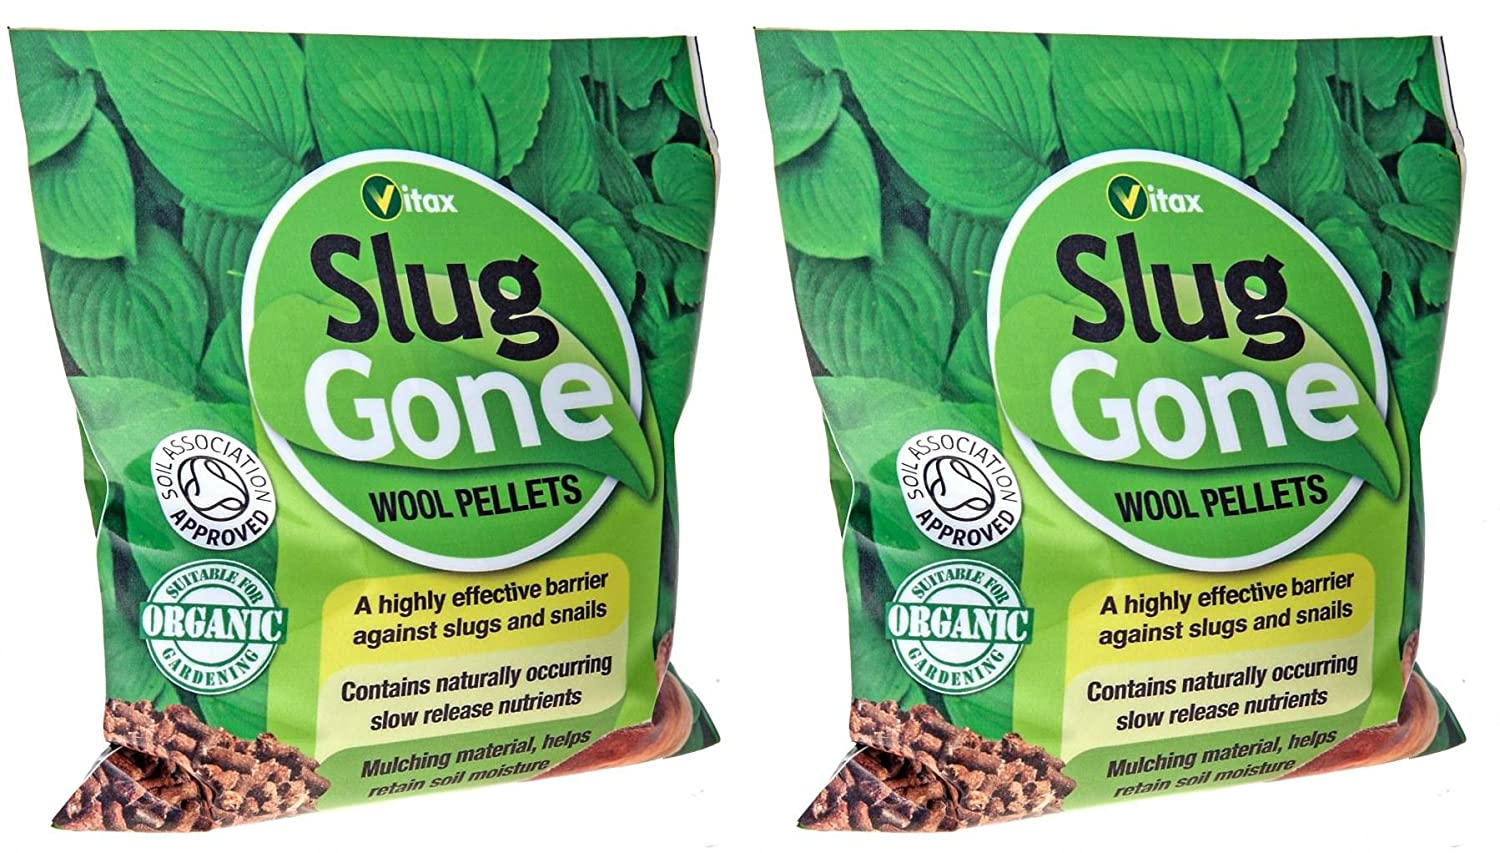 2 x Vitax Organic Highly Effective Slug Gone Slug & Snail Wool Pellets 3.5L